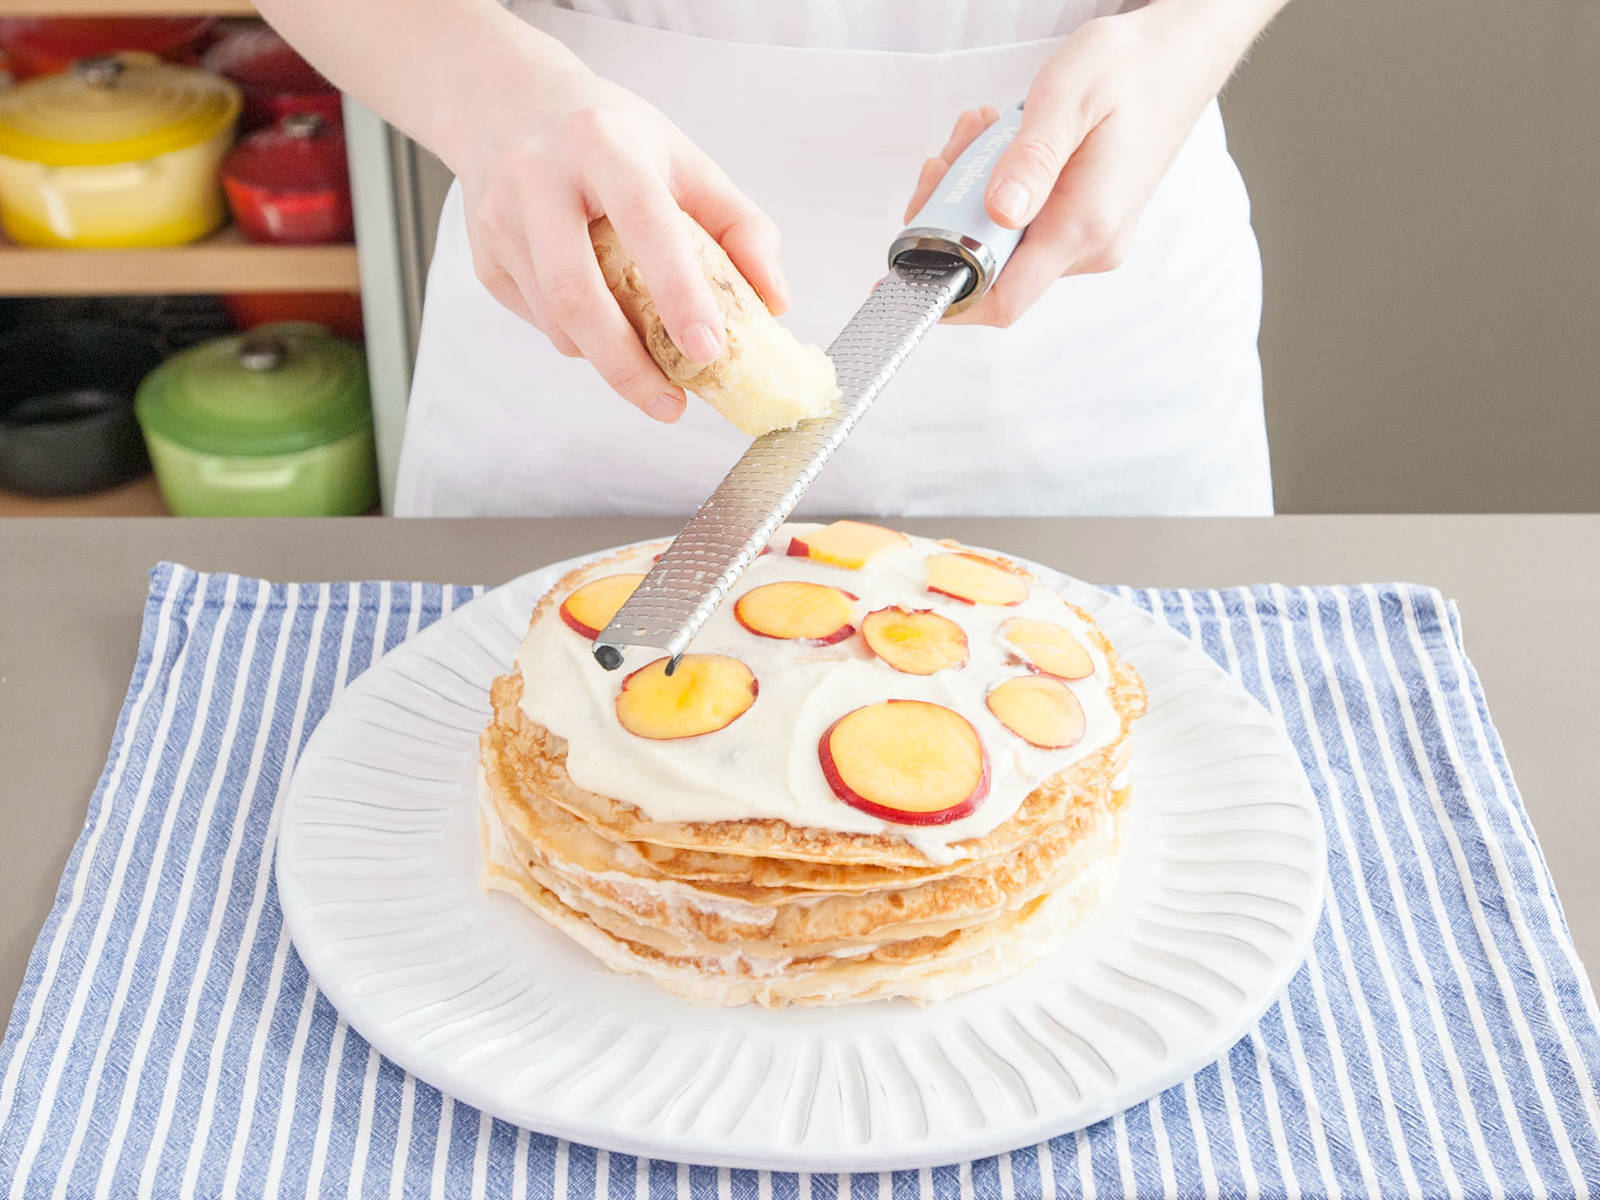 To assemble cake, slice nectarines thinly with a mandolin. Place one crêpe on a serving plate, then spread about 1/4 cup of pastry cream filling on top, and top with another crêpe. Continue this way until all crêpes are used, saving your best looking one for last. Every fourth crêpe or so, top pastry cream with a layer of nectarine slices and grated ginger to taste.